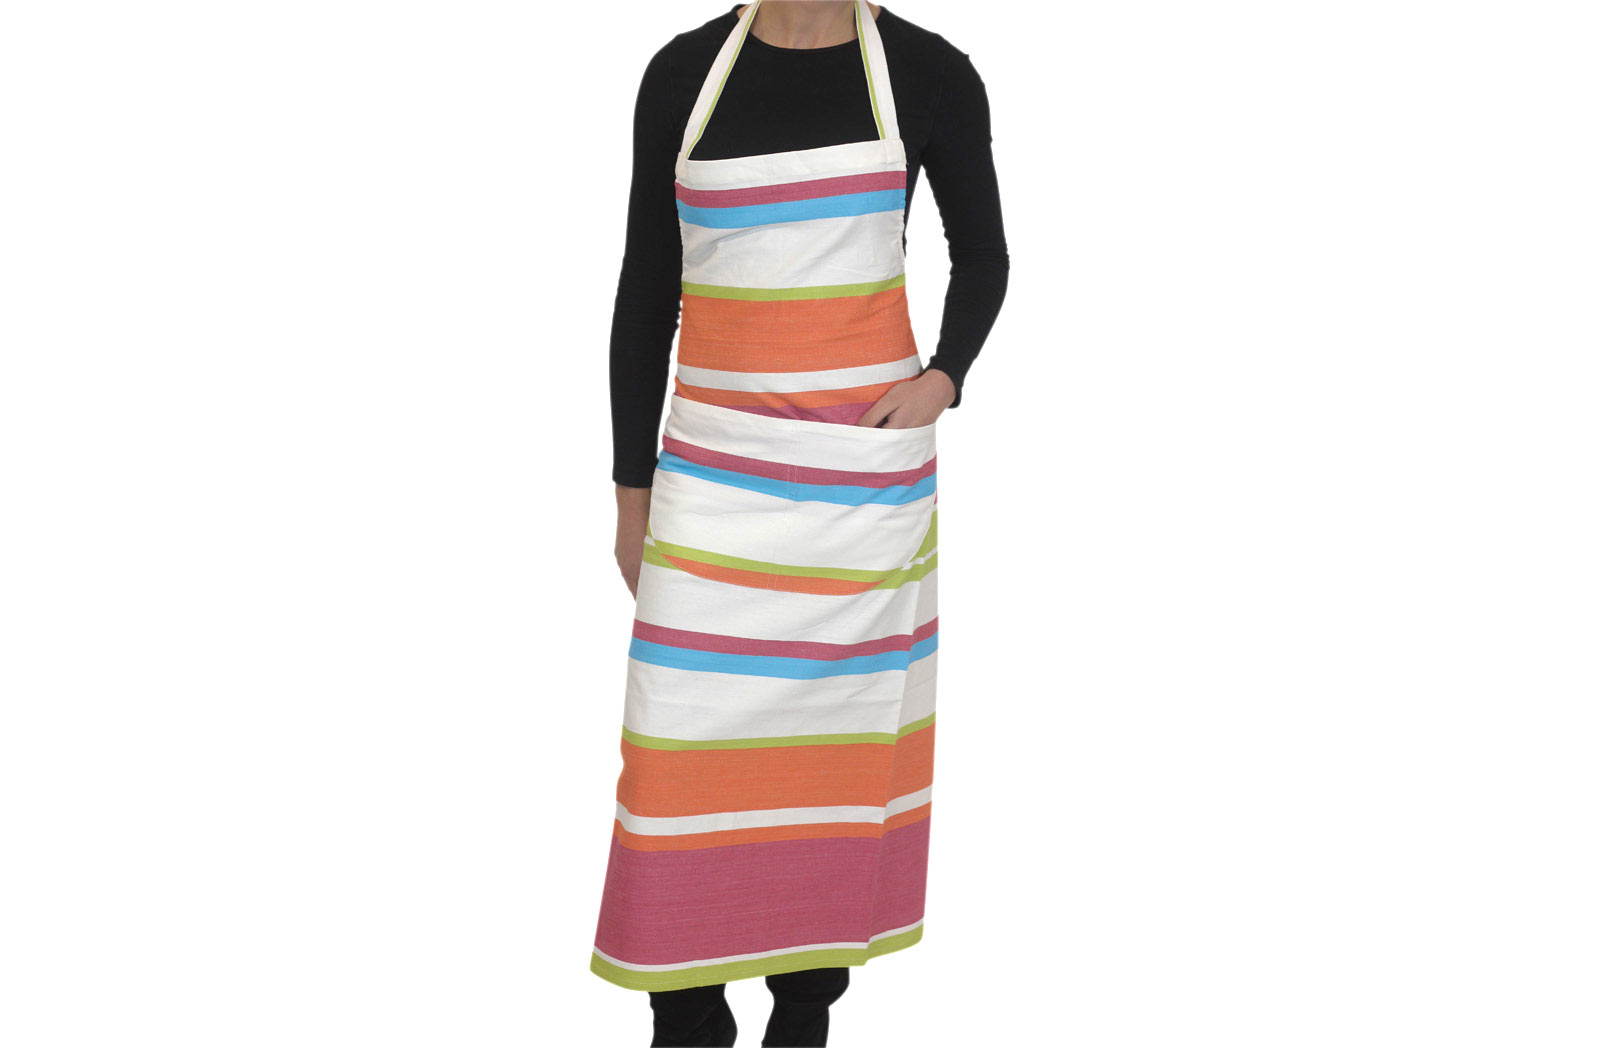 White Striped Aprons - Croquet Stripes